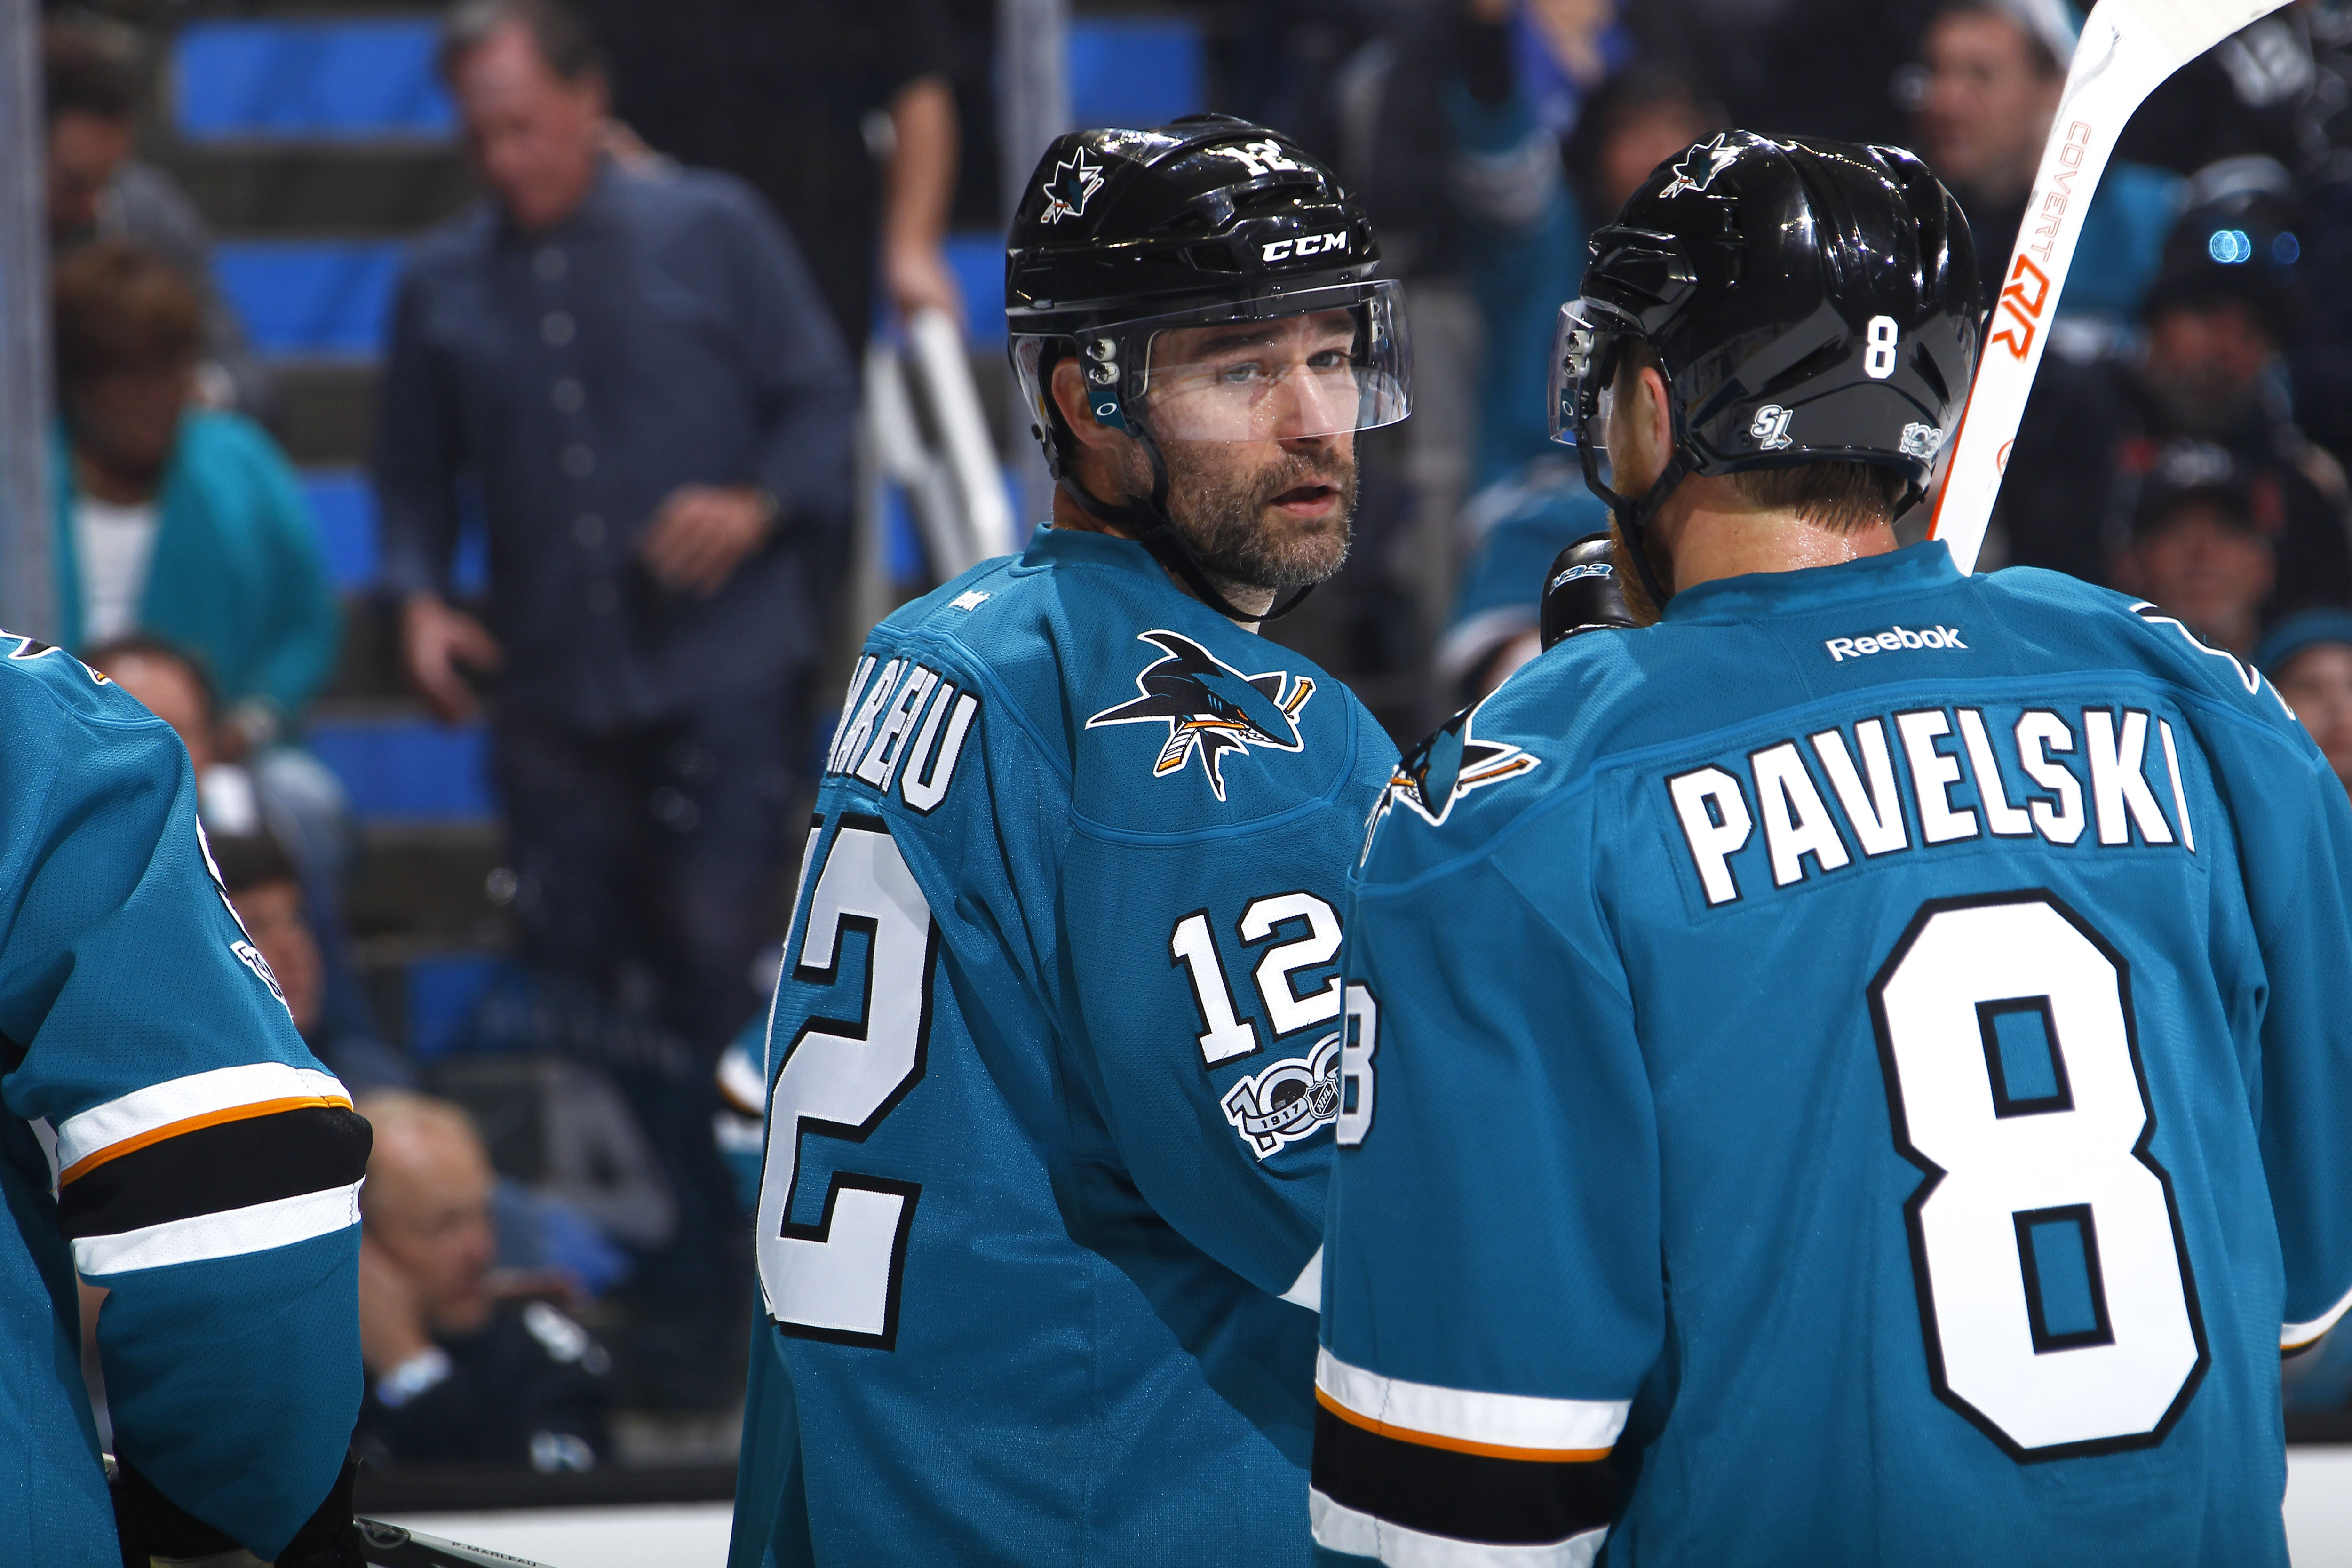 Patrick Marleau and Joe Pavelski of the San Jose Sharks talk during Game 6 of the Western Conference First Round during the 2017 NHL Stanley Cup Playoffs at SAP Center on April 22, 2017 in San Jose, California.